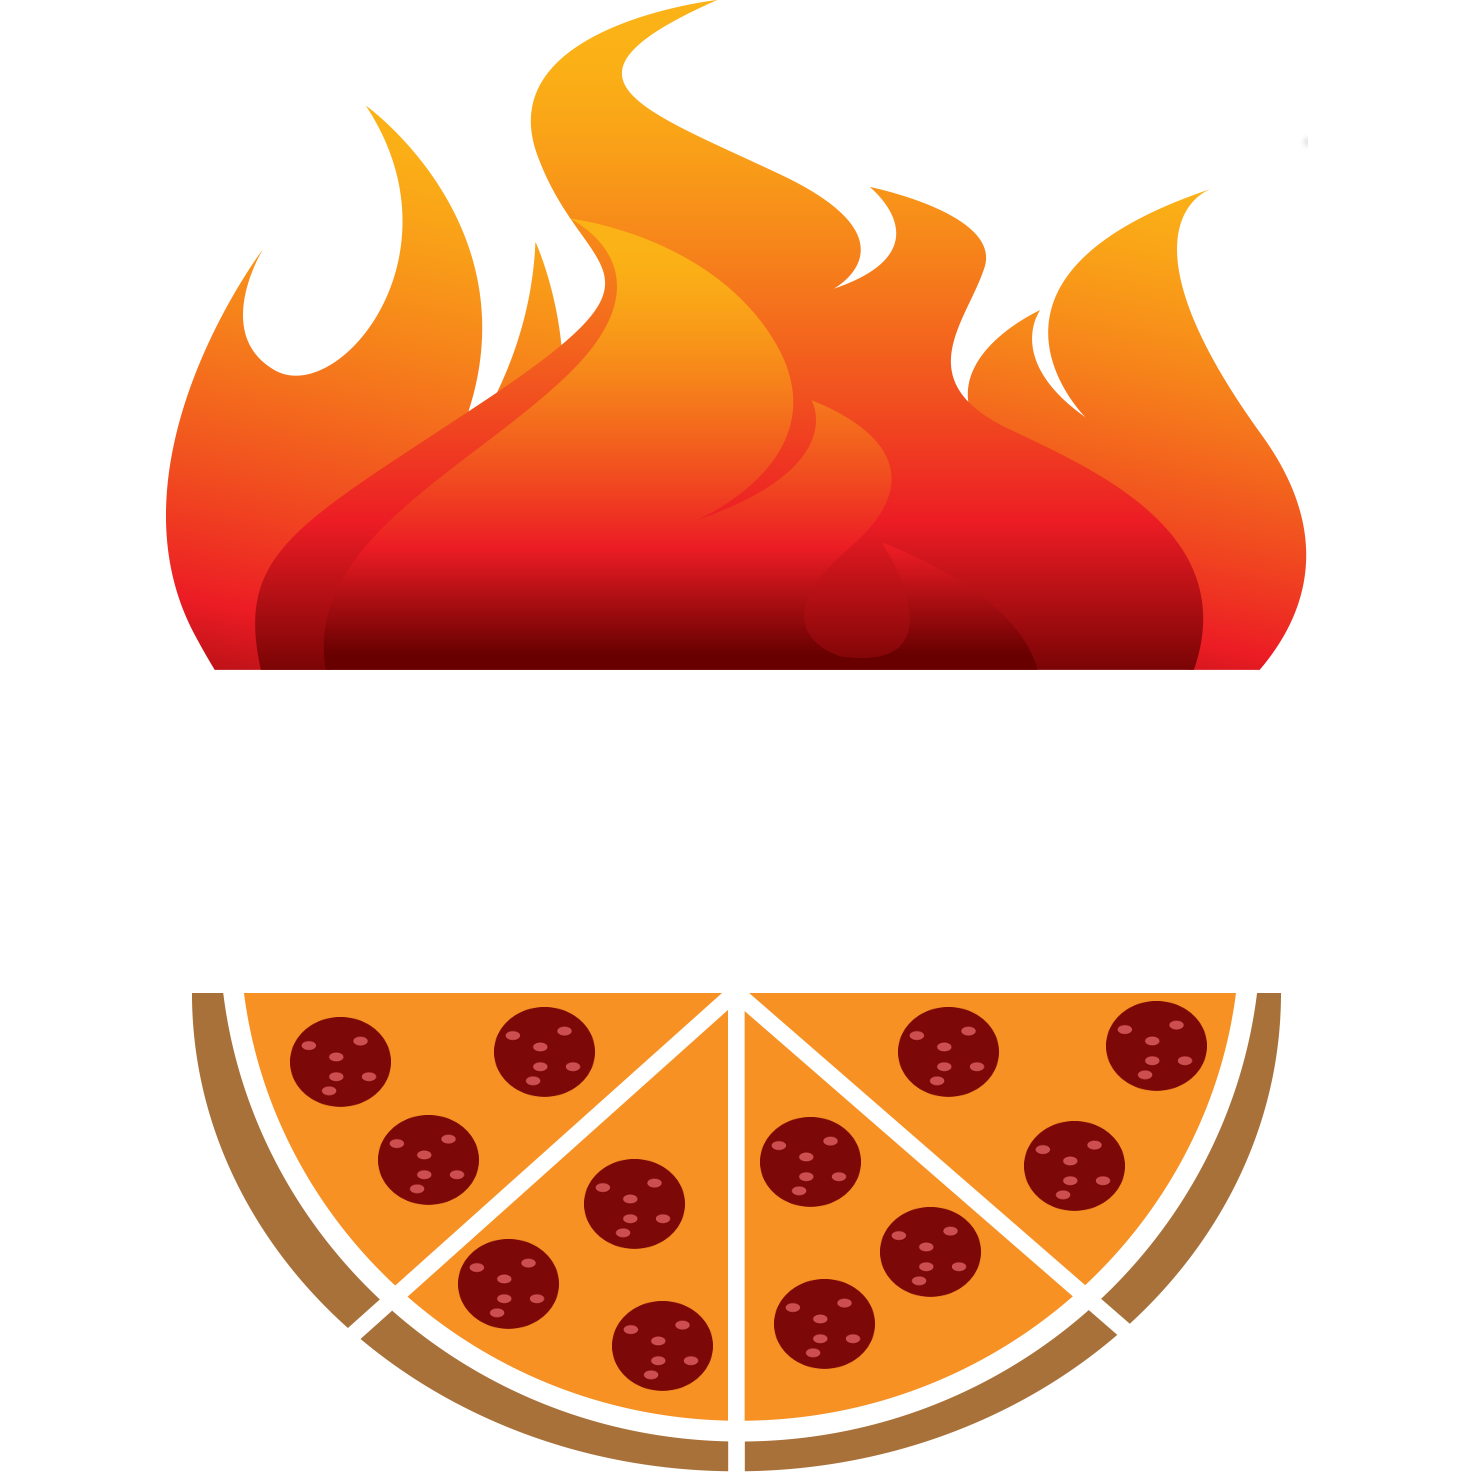 jpg freeuse stock Menu zander s woodfired. Appetizers clipart.